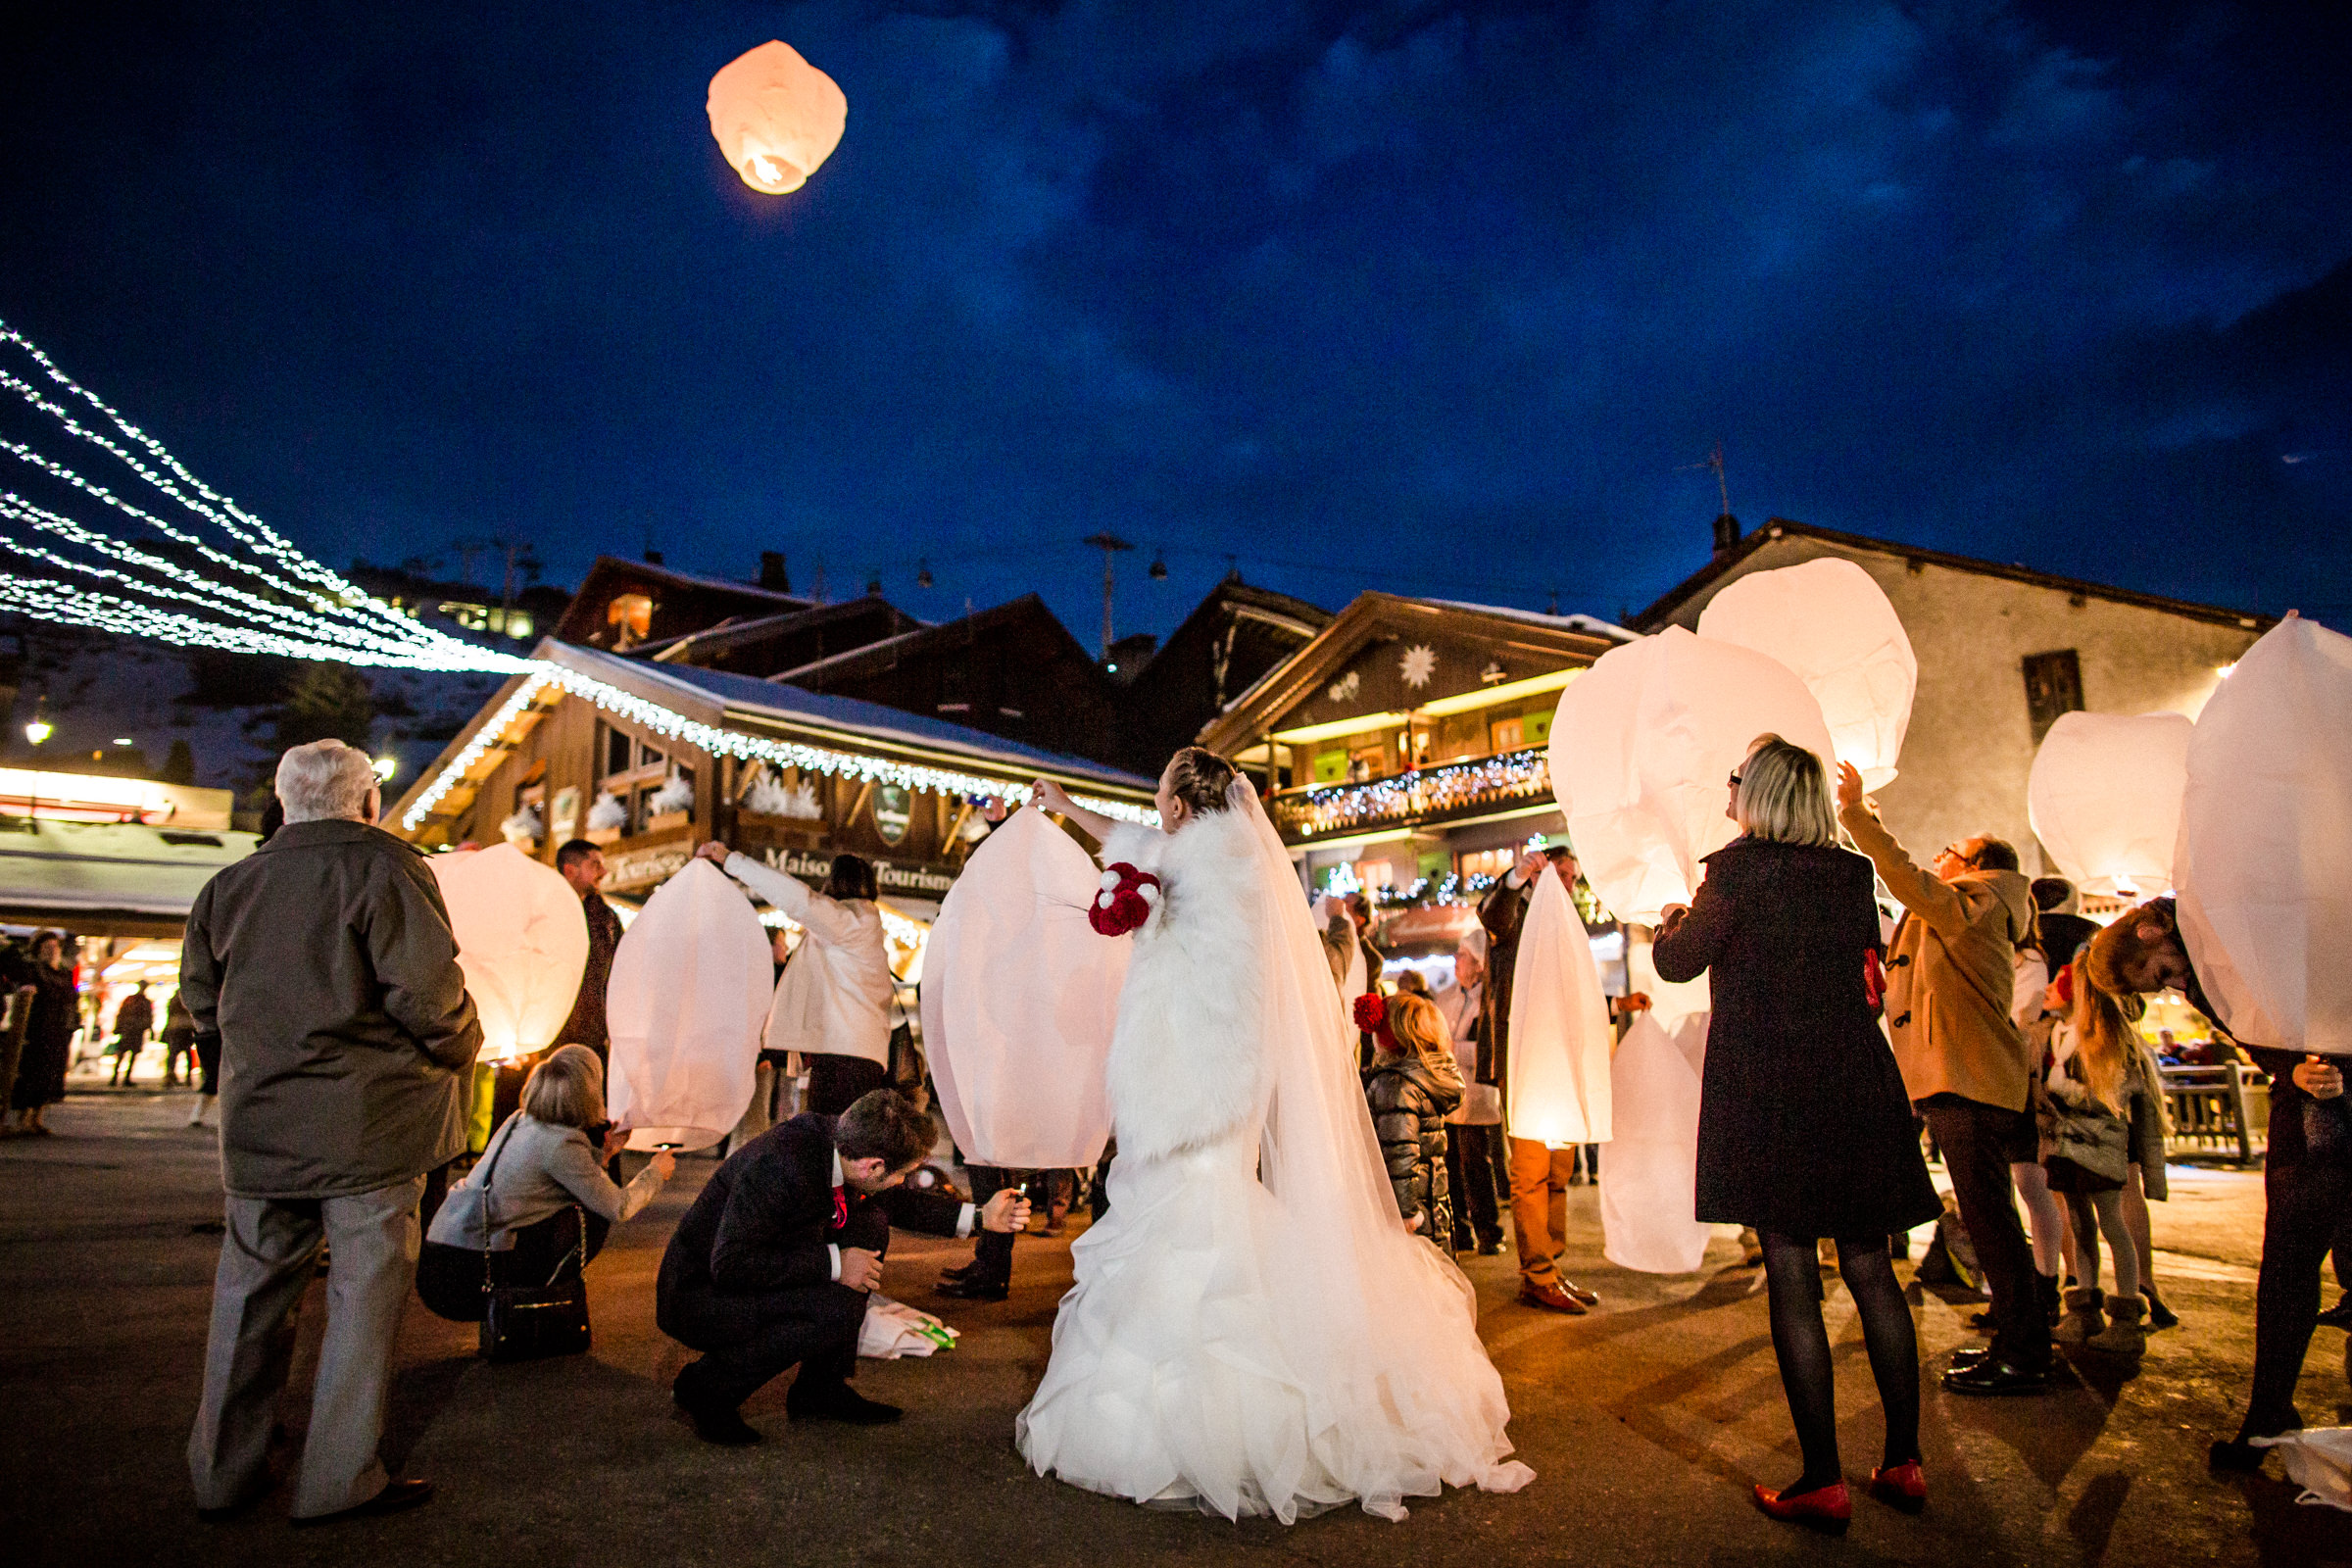 Lighting lanterns for marriage celebration in the French Alps - photo by William Lambelet